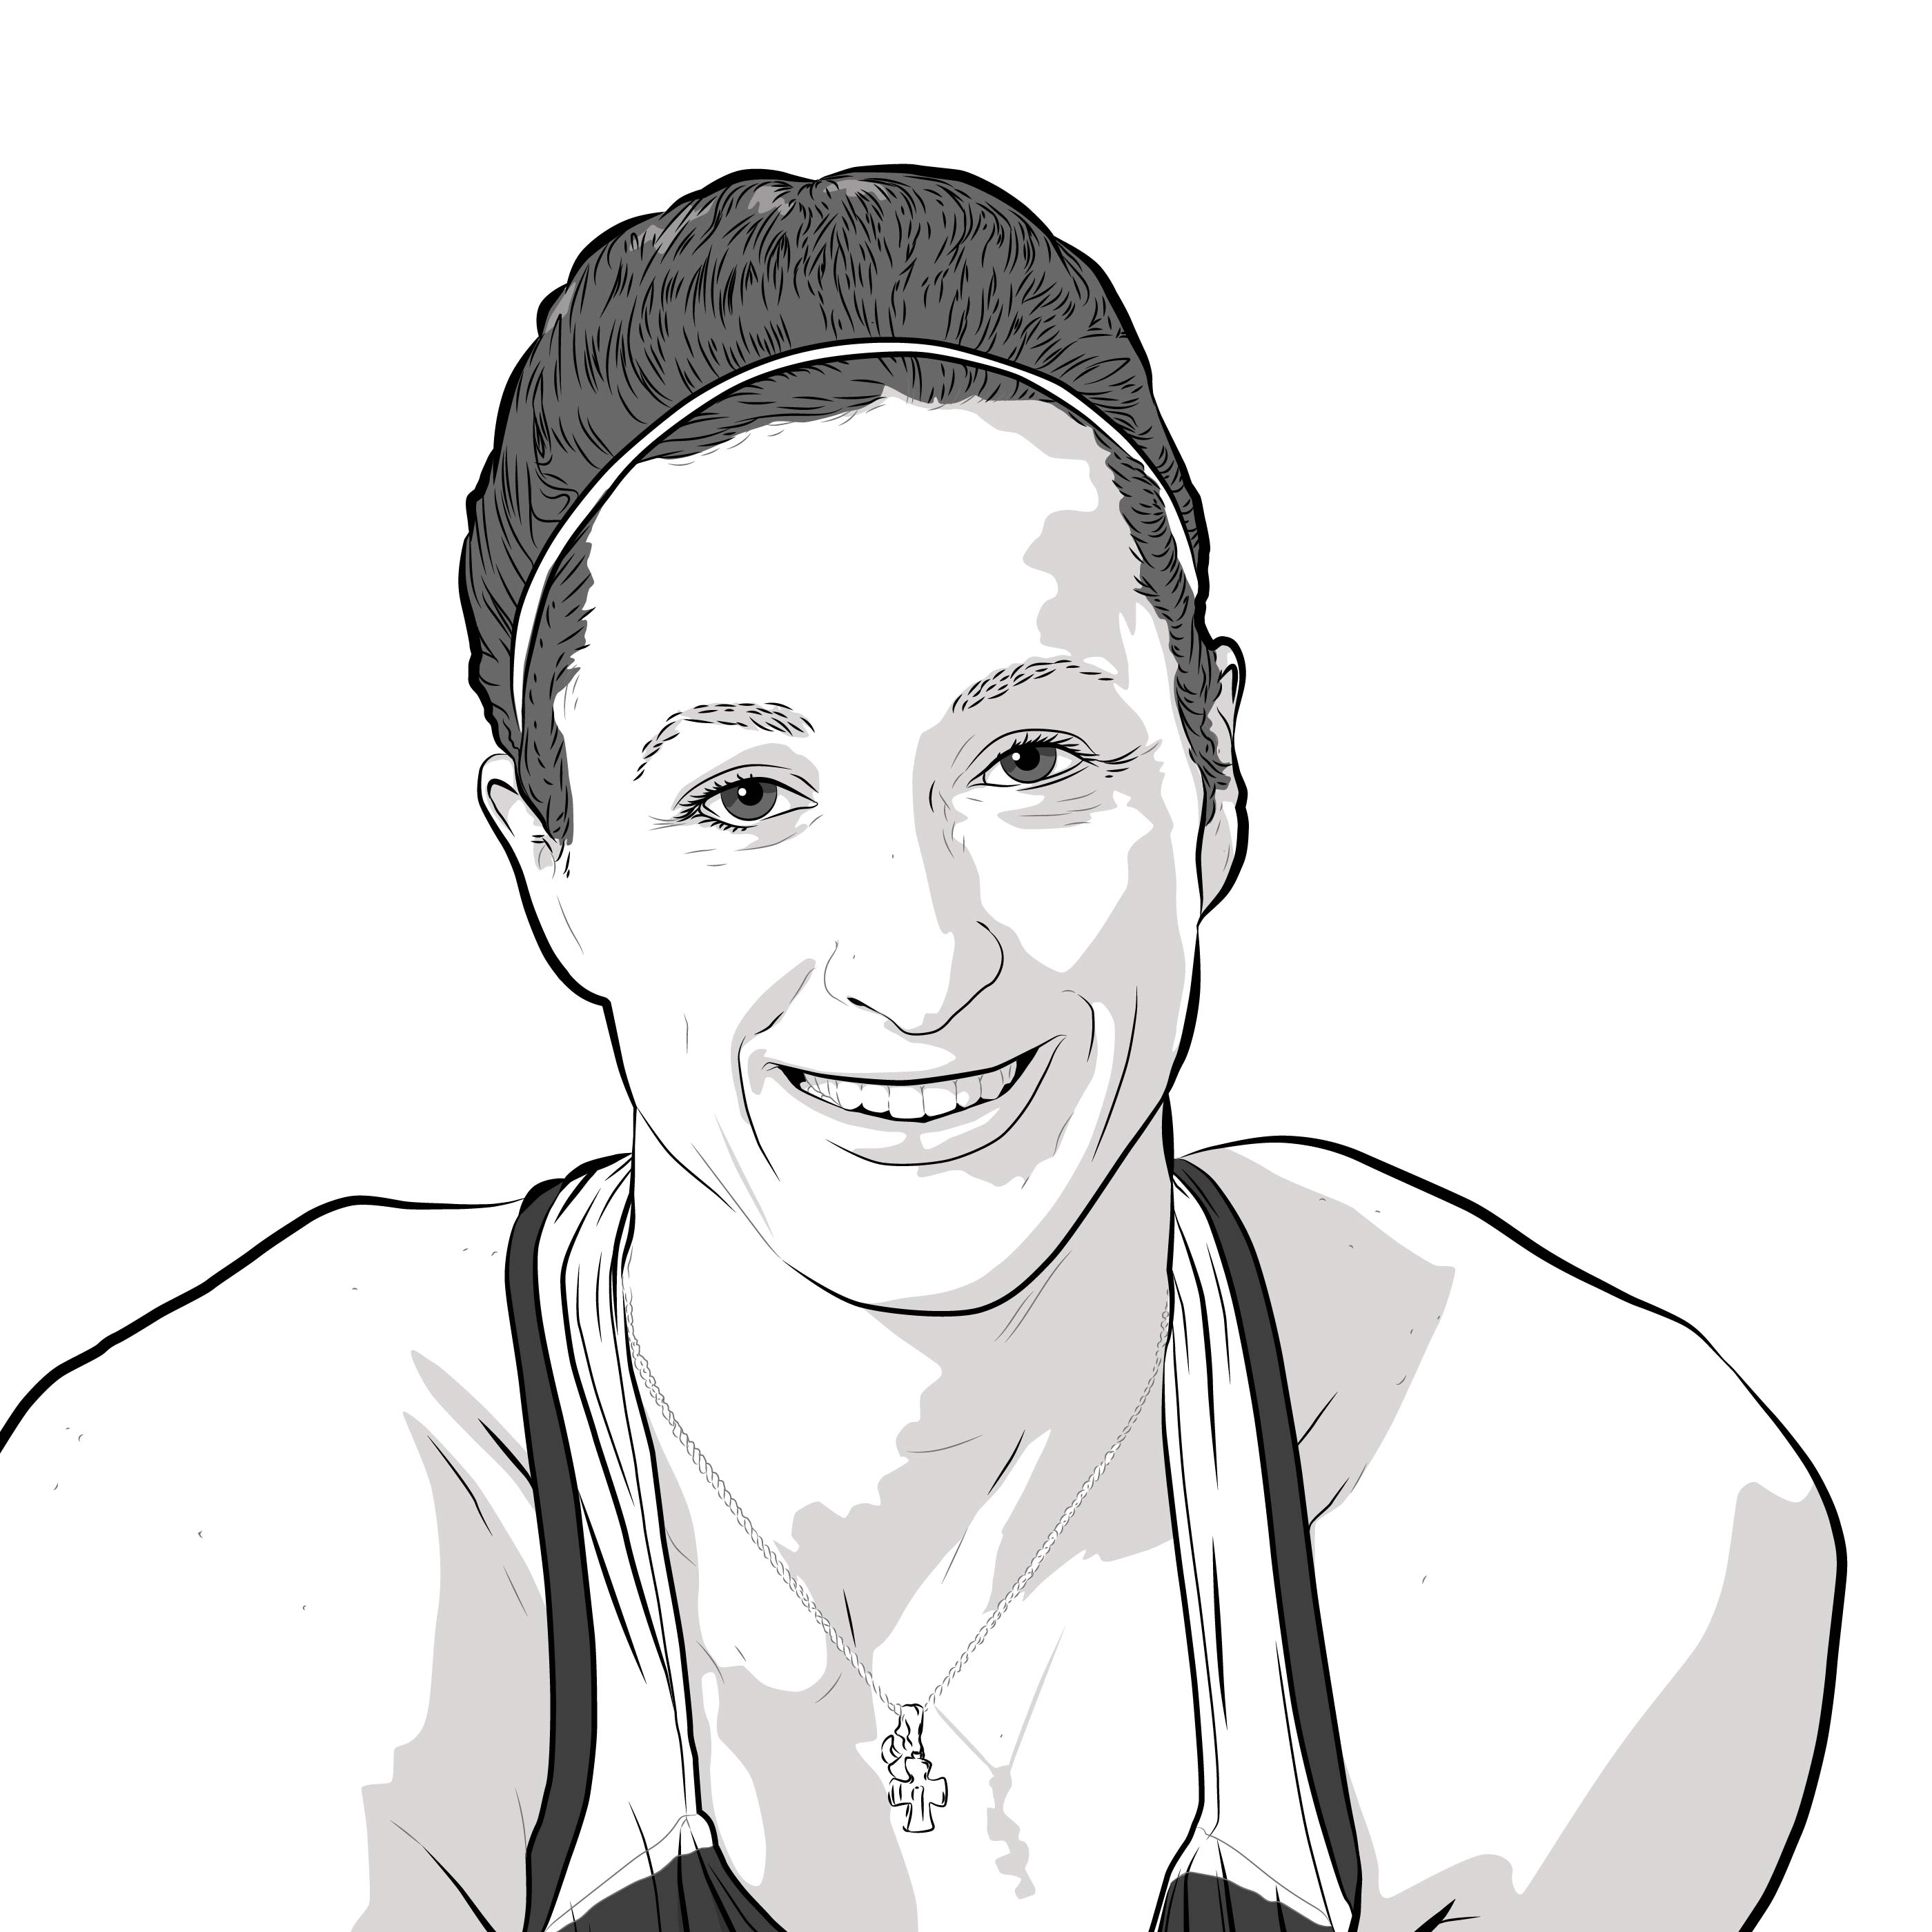 Athlete Portrait of Tatyana McFadden, Illustration by Max Hancock